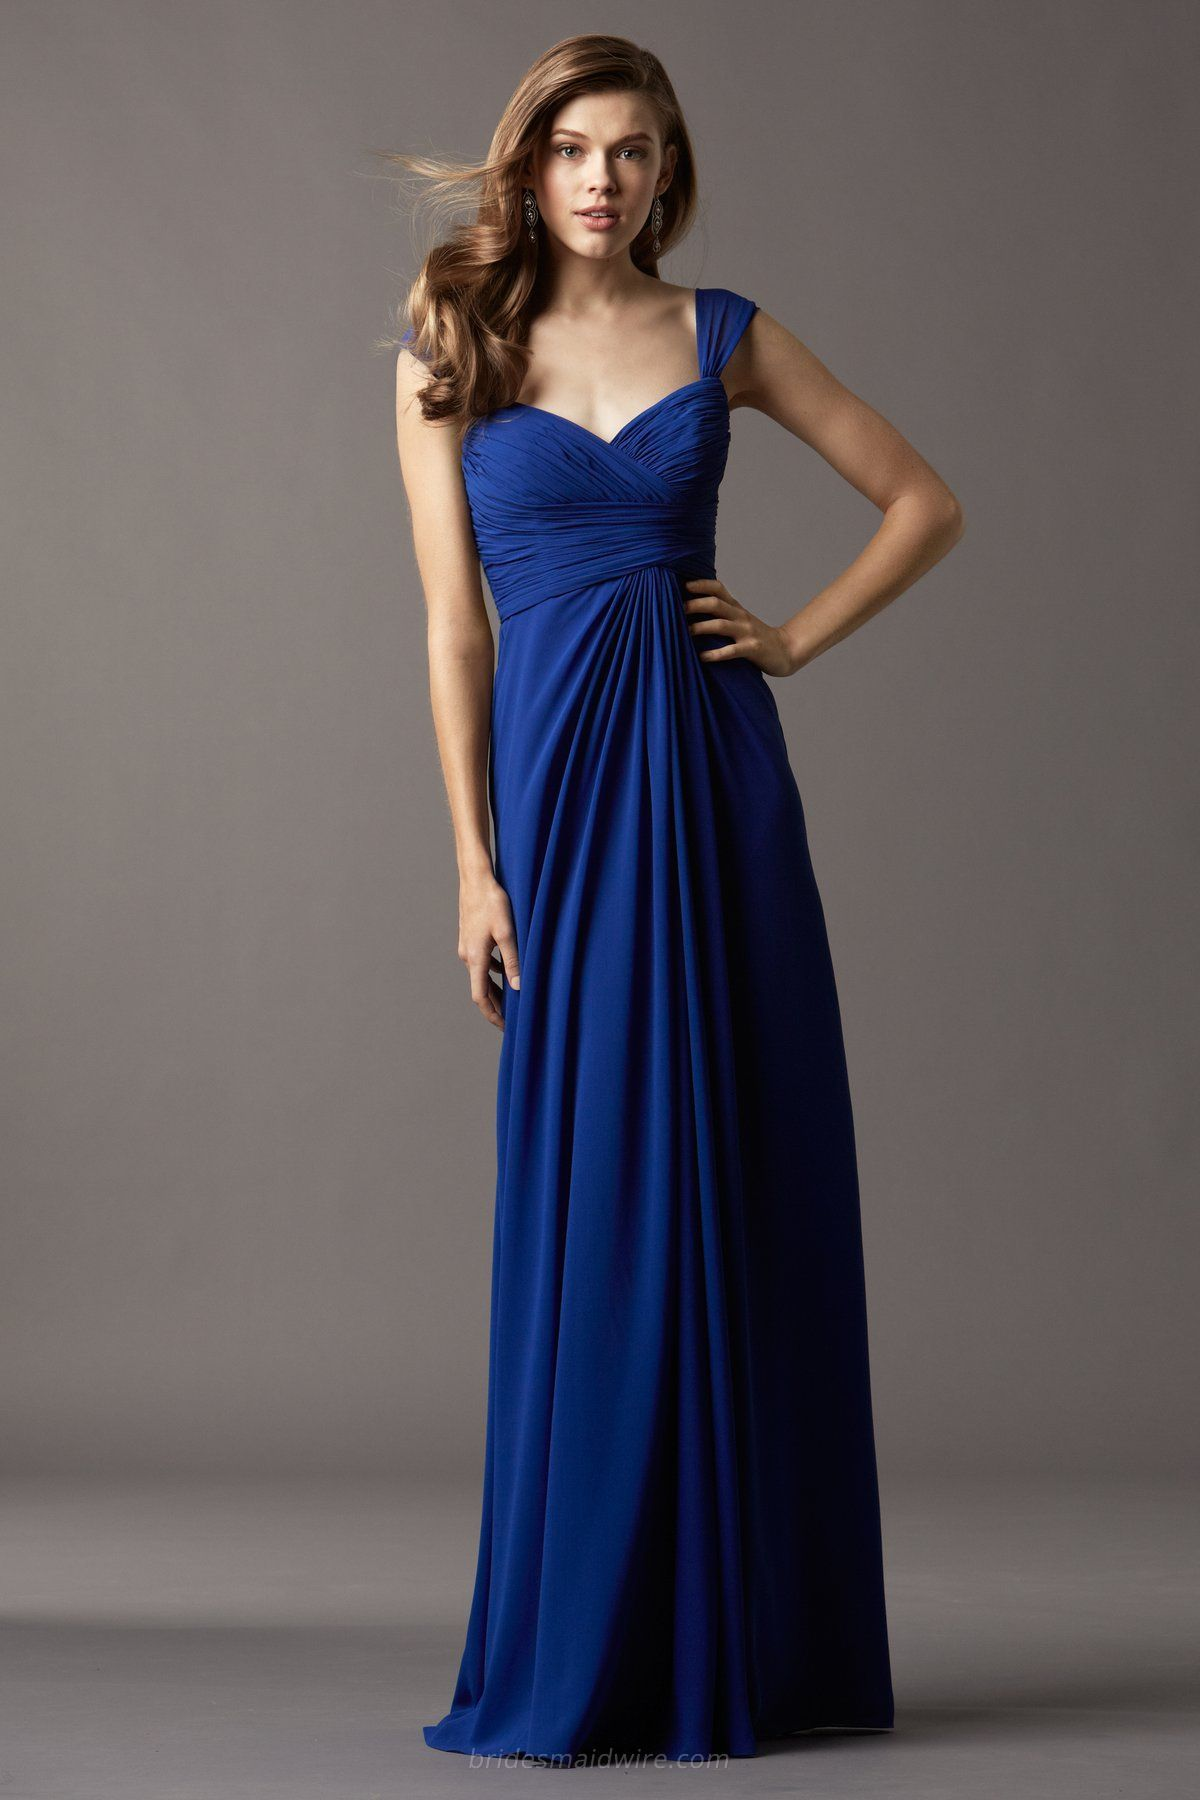 e90b4e7d0bc Cap Sleeve Floor Length Long Royal Blue Chiffon Draped Bridesmaid Dress